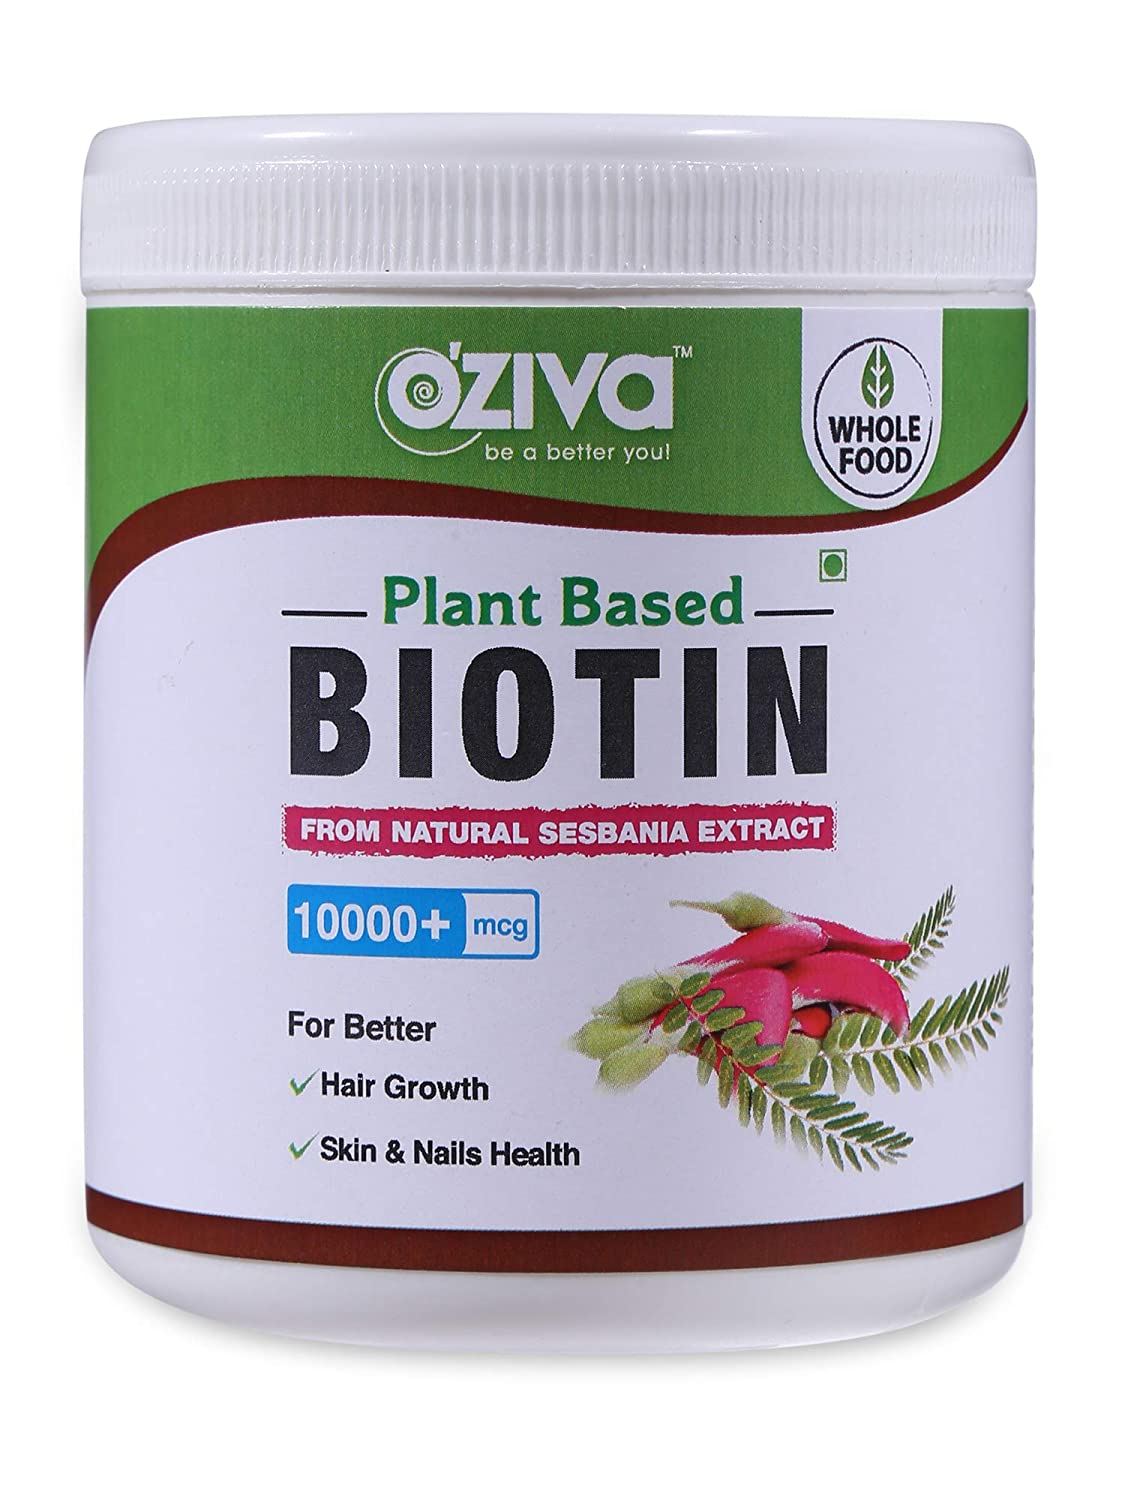 Buy OZiva Plant Based Biotin. 10, 000+ mcg (with Sesbania Agati